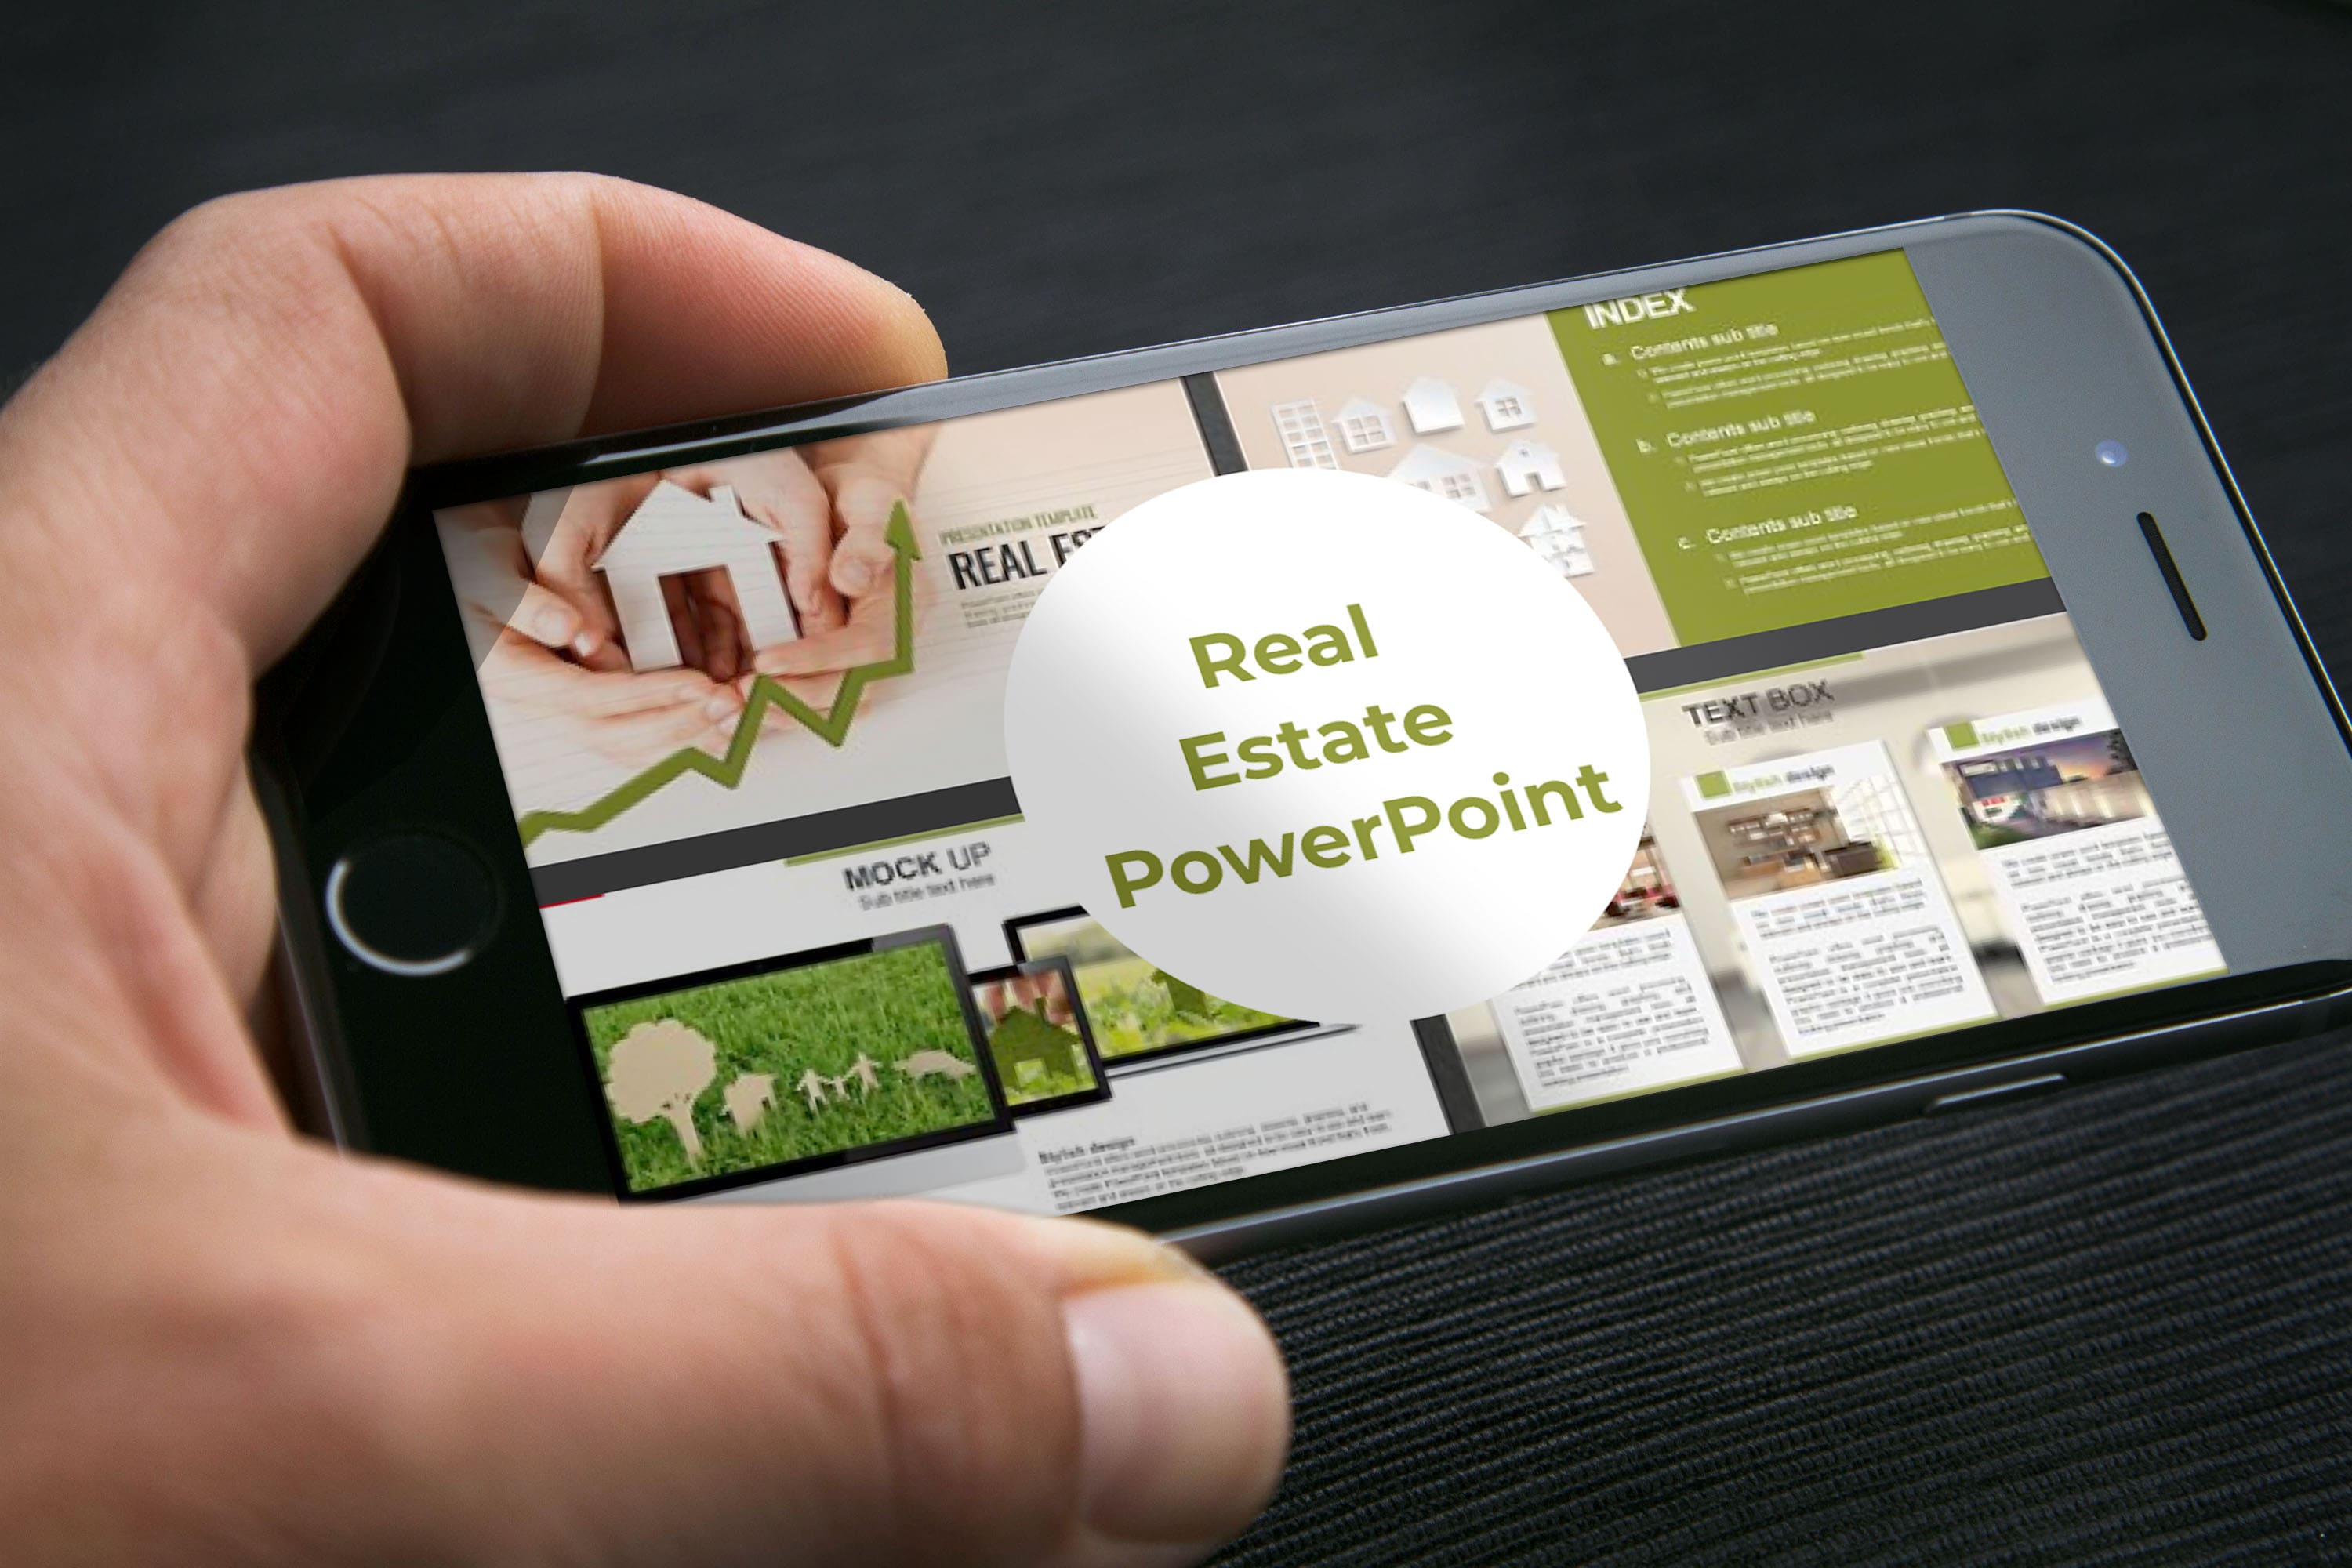 Real Estate PowerPoint Template by MasterBundles mobile preview mockup image.